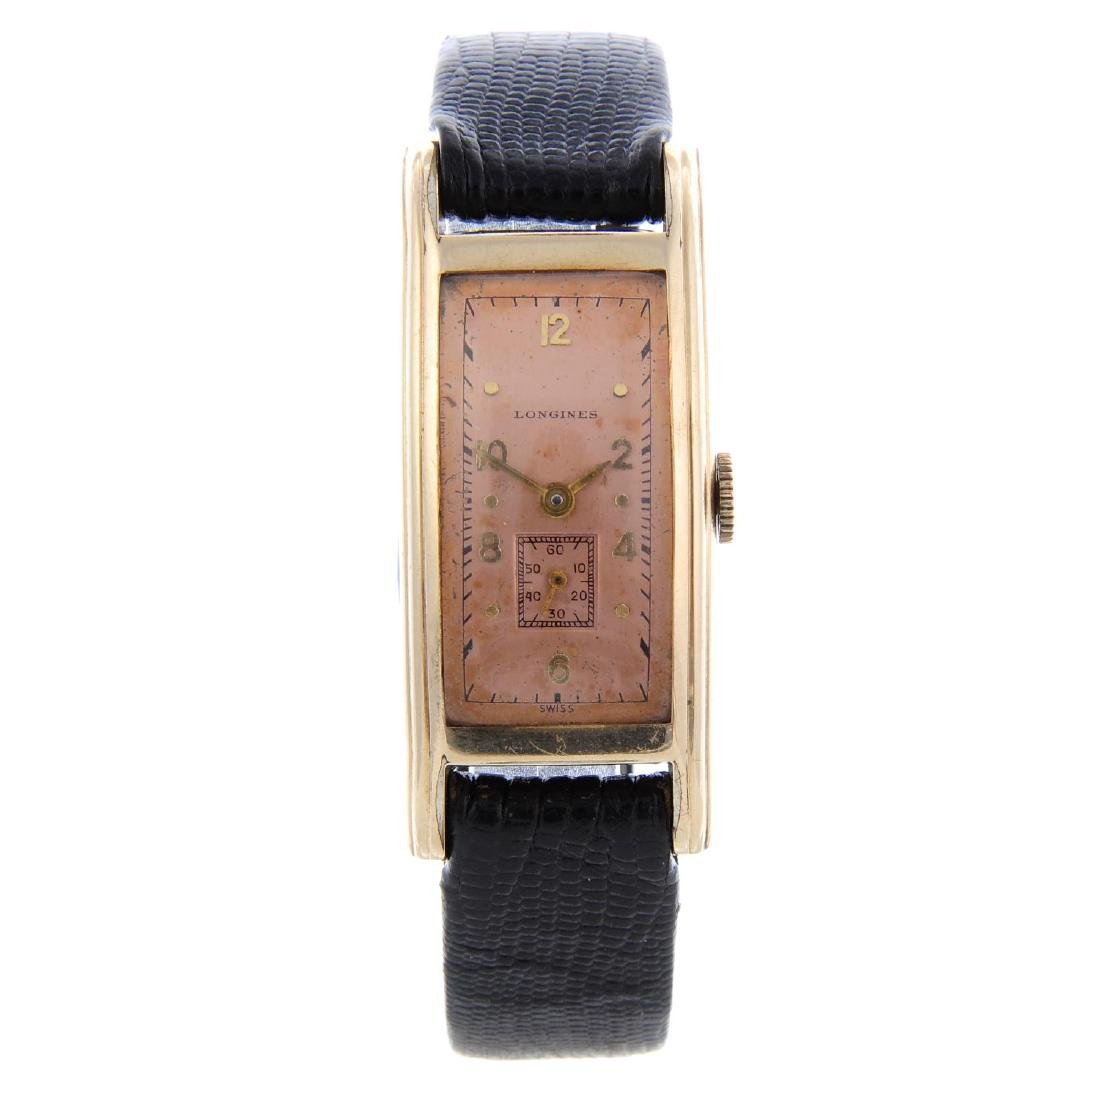 LONGINES - a gentleman's wrist watch. Gold plated case.